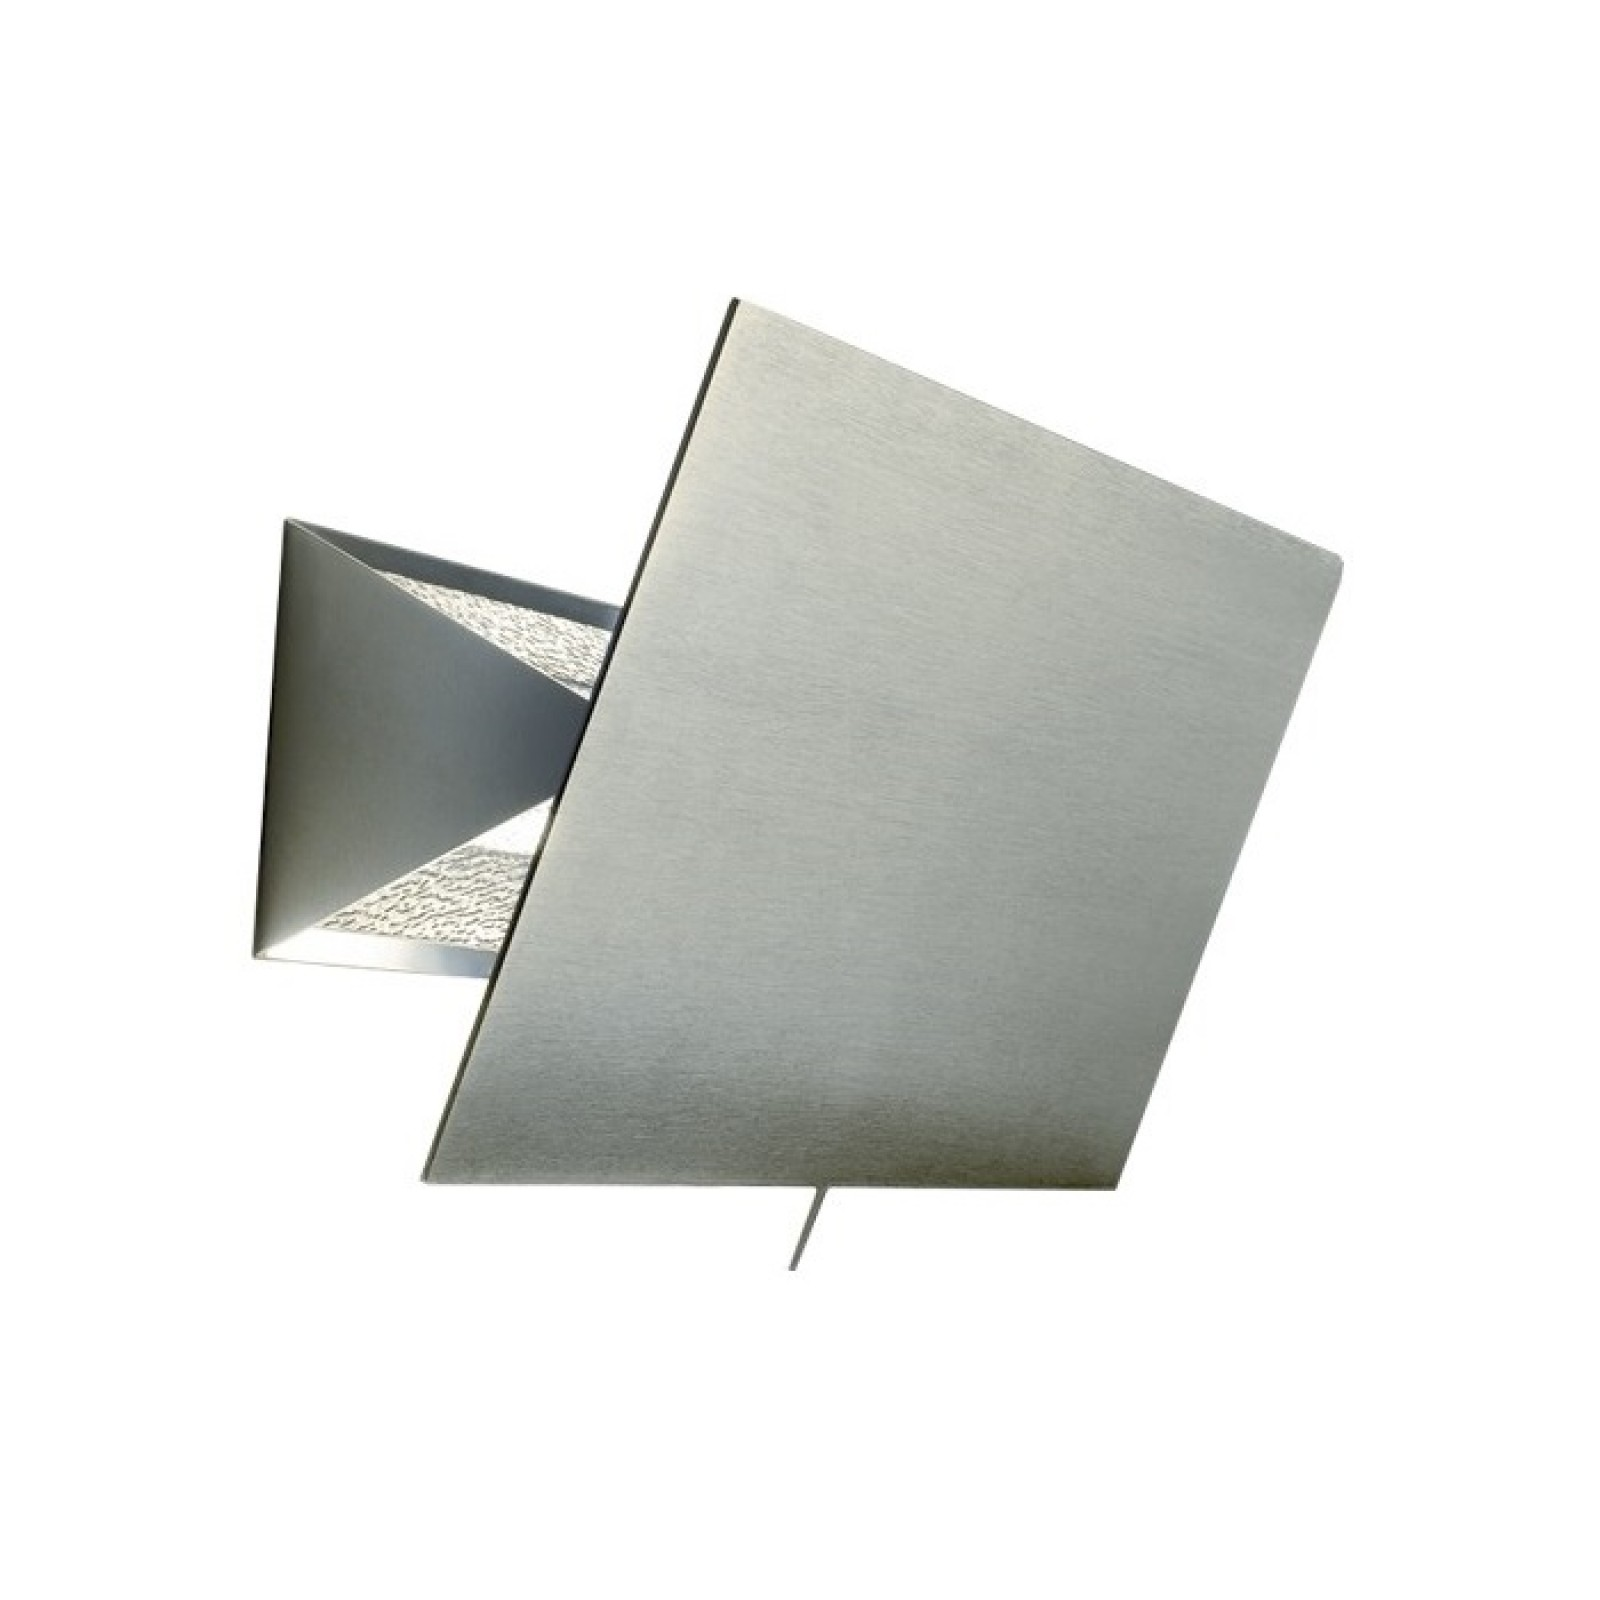 Shadow Wall Lamp - Karboxx